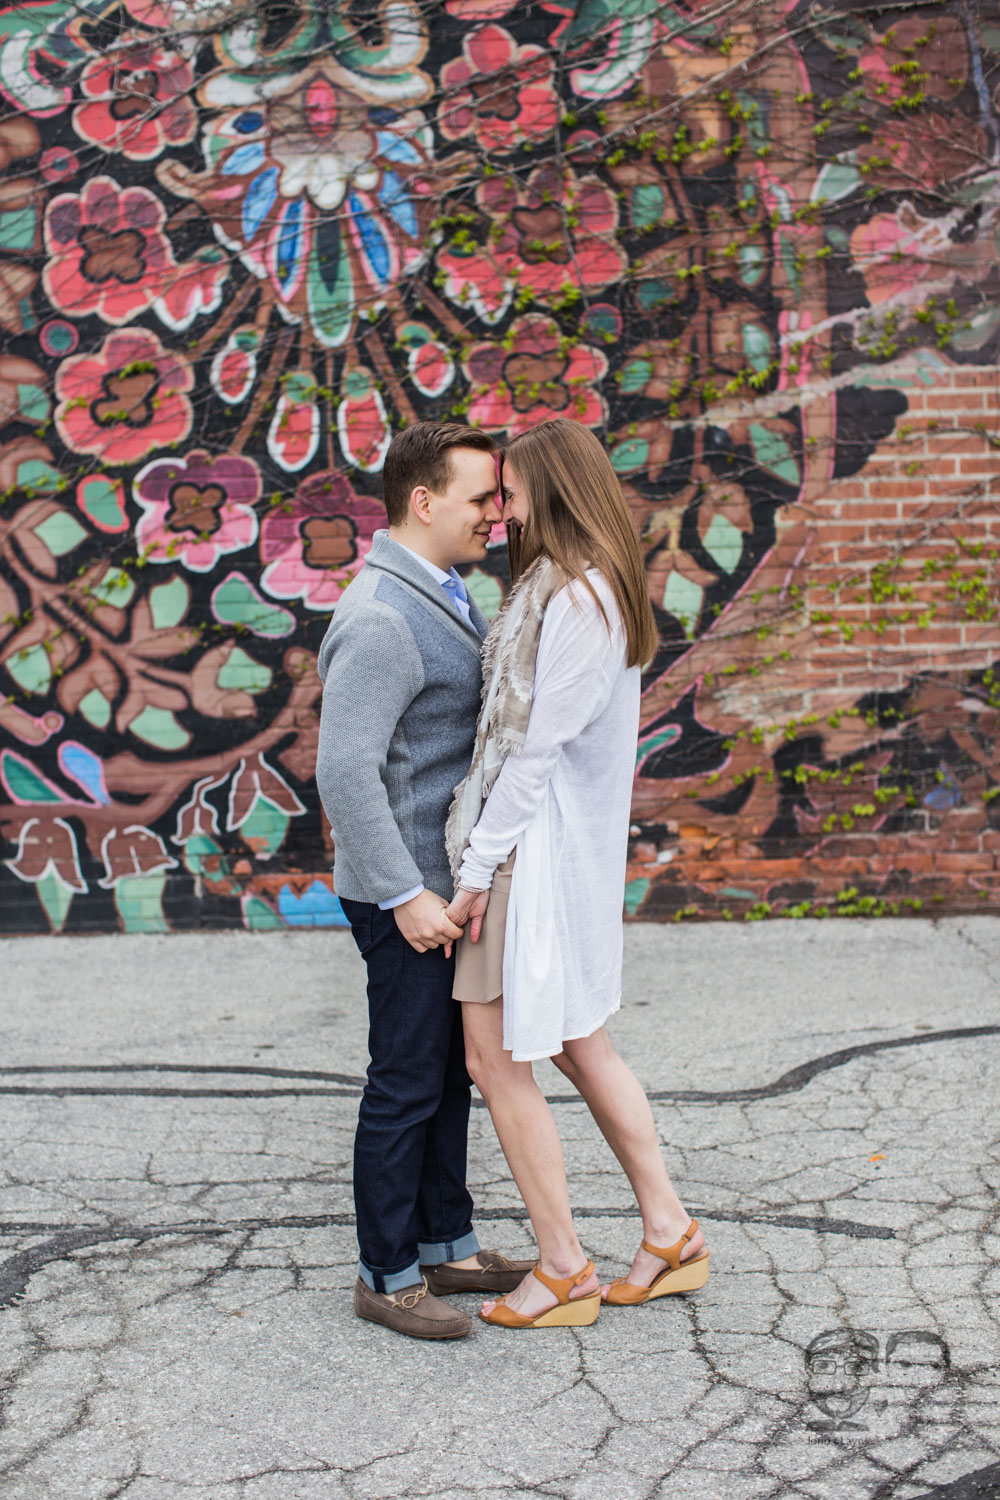 29Liberty Village Toronto- Lifestyle Photographers-Jono & Laynie Co.jpg